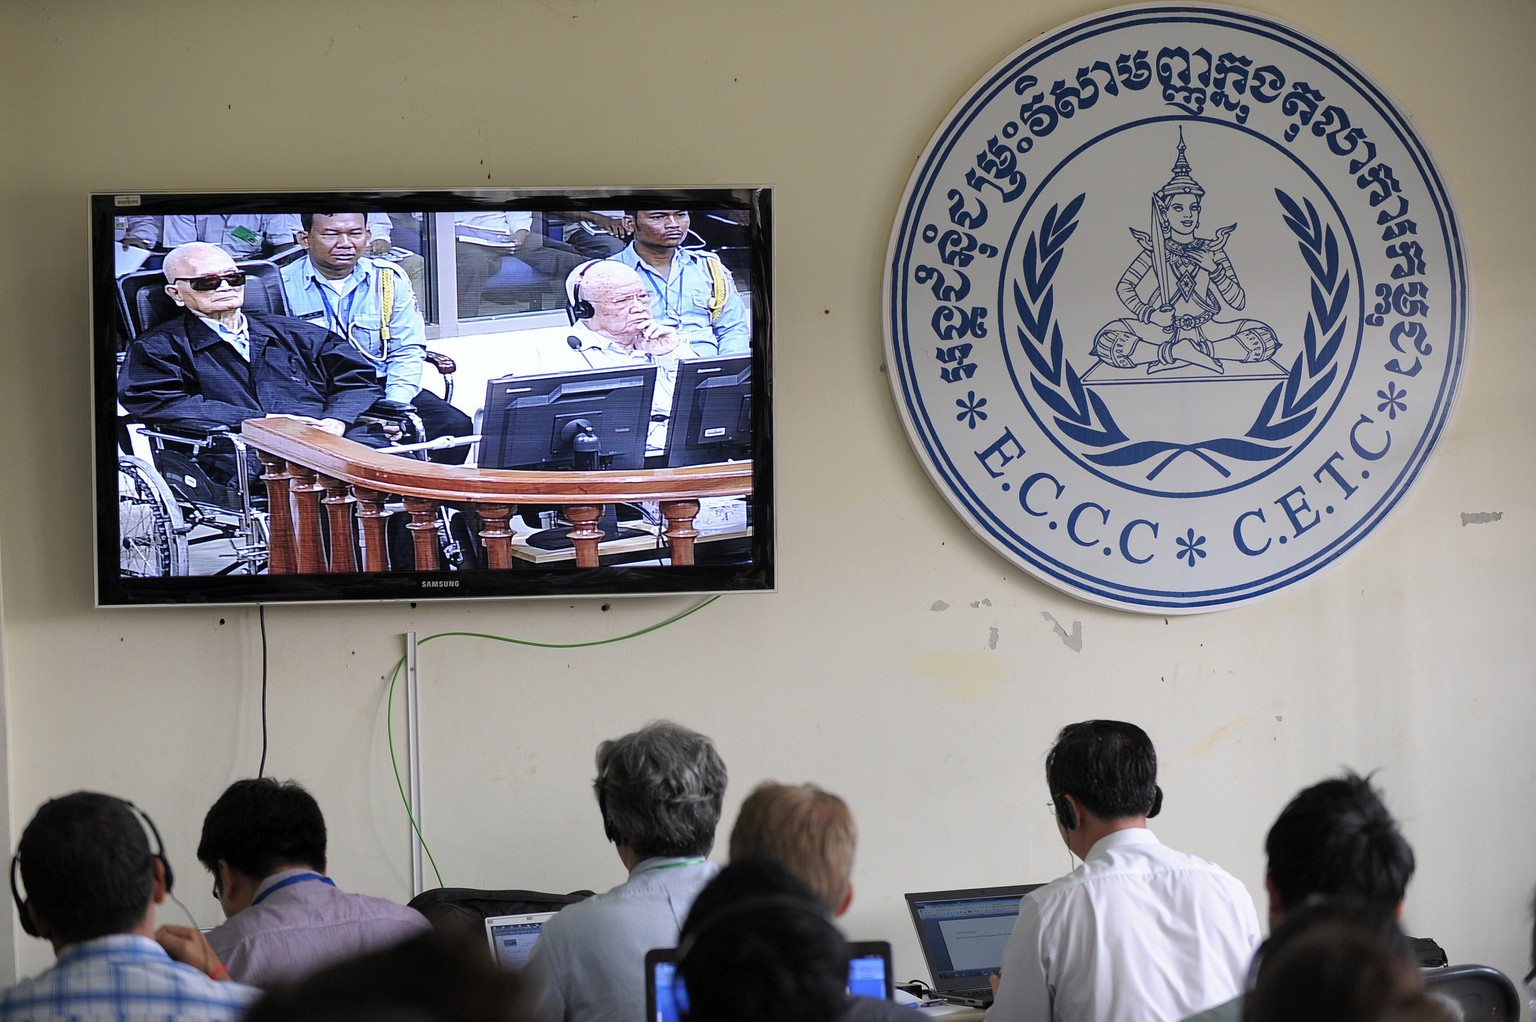 "Cambodian and international journalists watch a live video feed showing former Khmer Rouge leader ""Brother Number Two"" Nuon Chea (L) and former Khmer Rouge head of state Khieu Samphan (R) in the courtroom during their trial at the Extraordinary Chamber in the Courts of Cambodia (ECCC) in Phnom Penh on August 7, 2014.  The two former Khmer Rouge leaders face a verdict at the UN-backed tribunal in Cambodia on August 7 over allegations of crimes against humanity, marking the first time rulers of the murderous regime will be judged in a court.     AFP PHOTO / TANG CHHIN SOTHY"